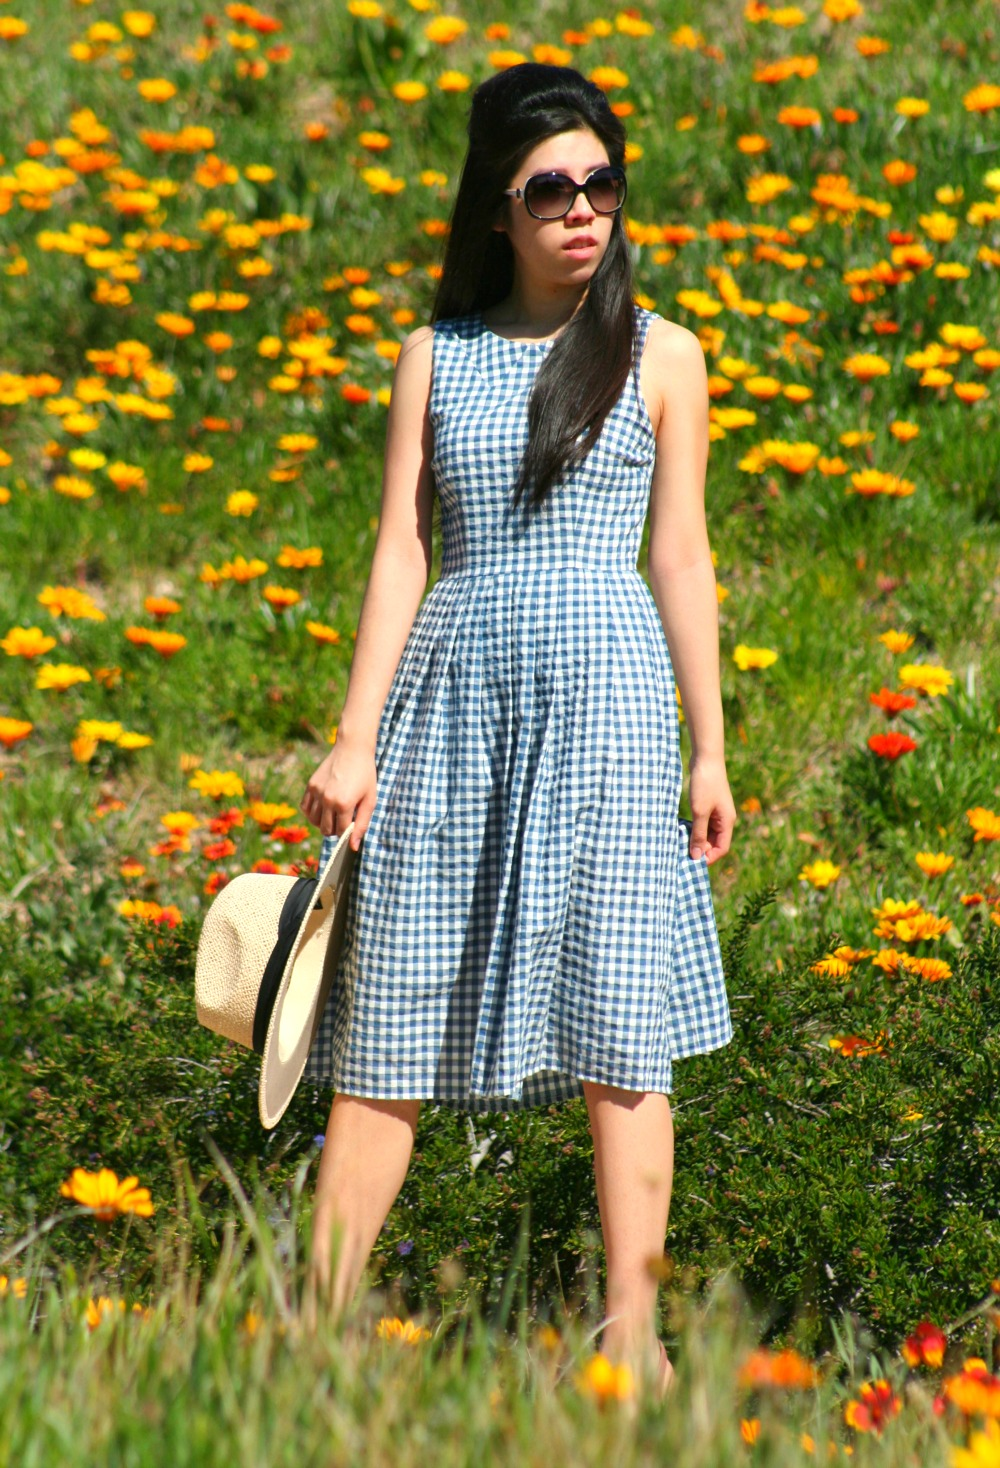 Blue Gingham Dress_Kaya & Sloane Nordstrom Gingham Midi Dress_Adrienne Nguyen_Invictus